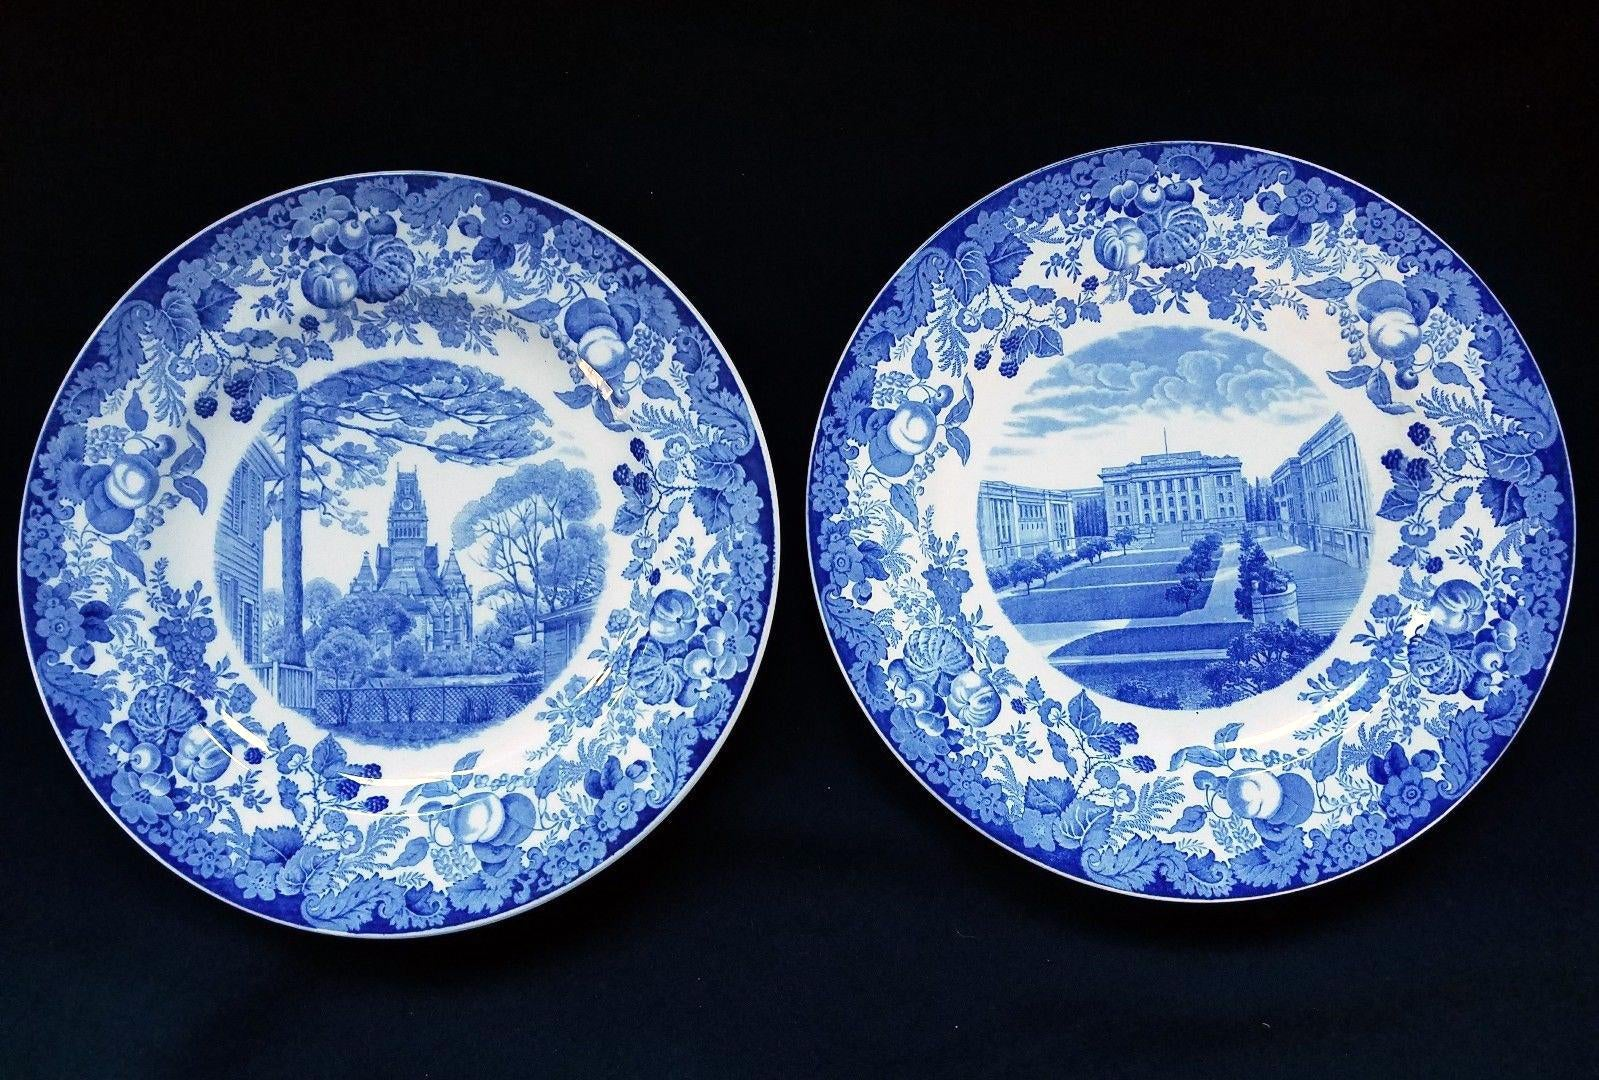 1927 Wedgwood Pottery Plates with Harvard Scenes - Set of 12 - Image 4 of 10  sc 1 st  Chairish & 1927 Wedgwood Pottery Plates with Harvard Scenes - Set of 12 | Chairish